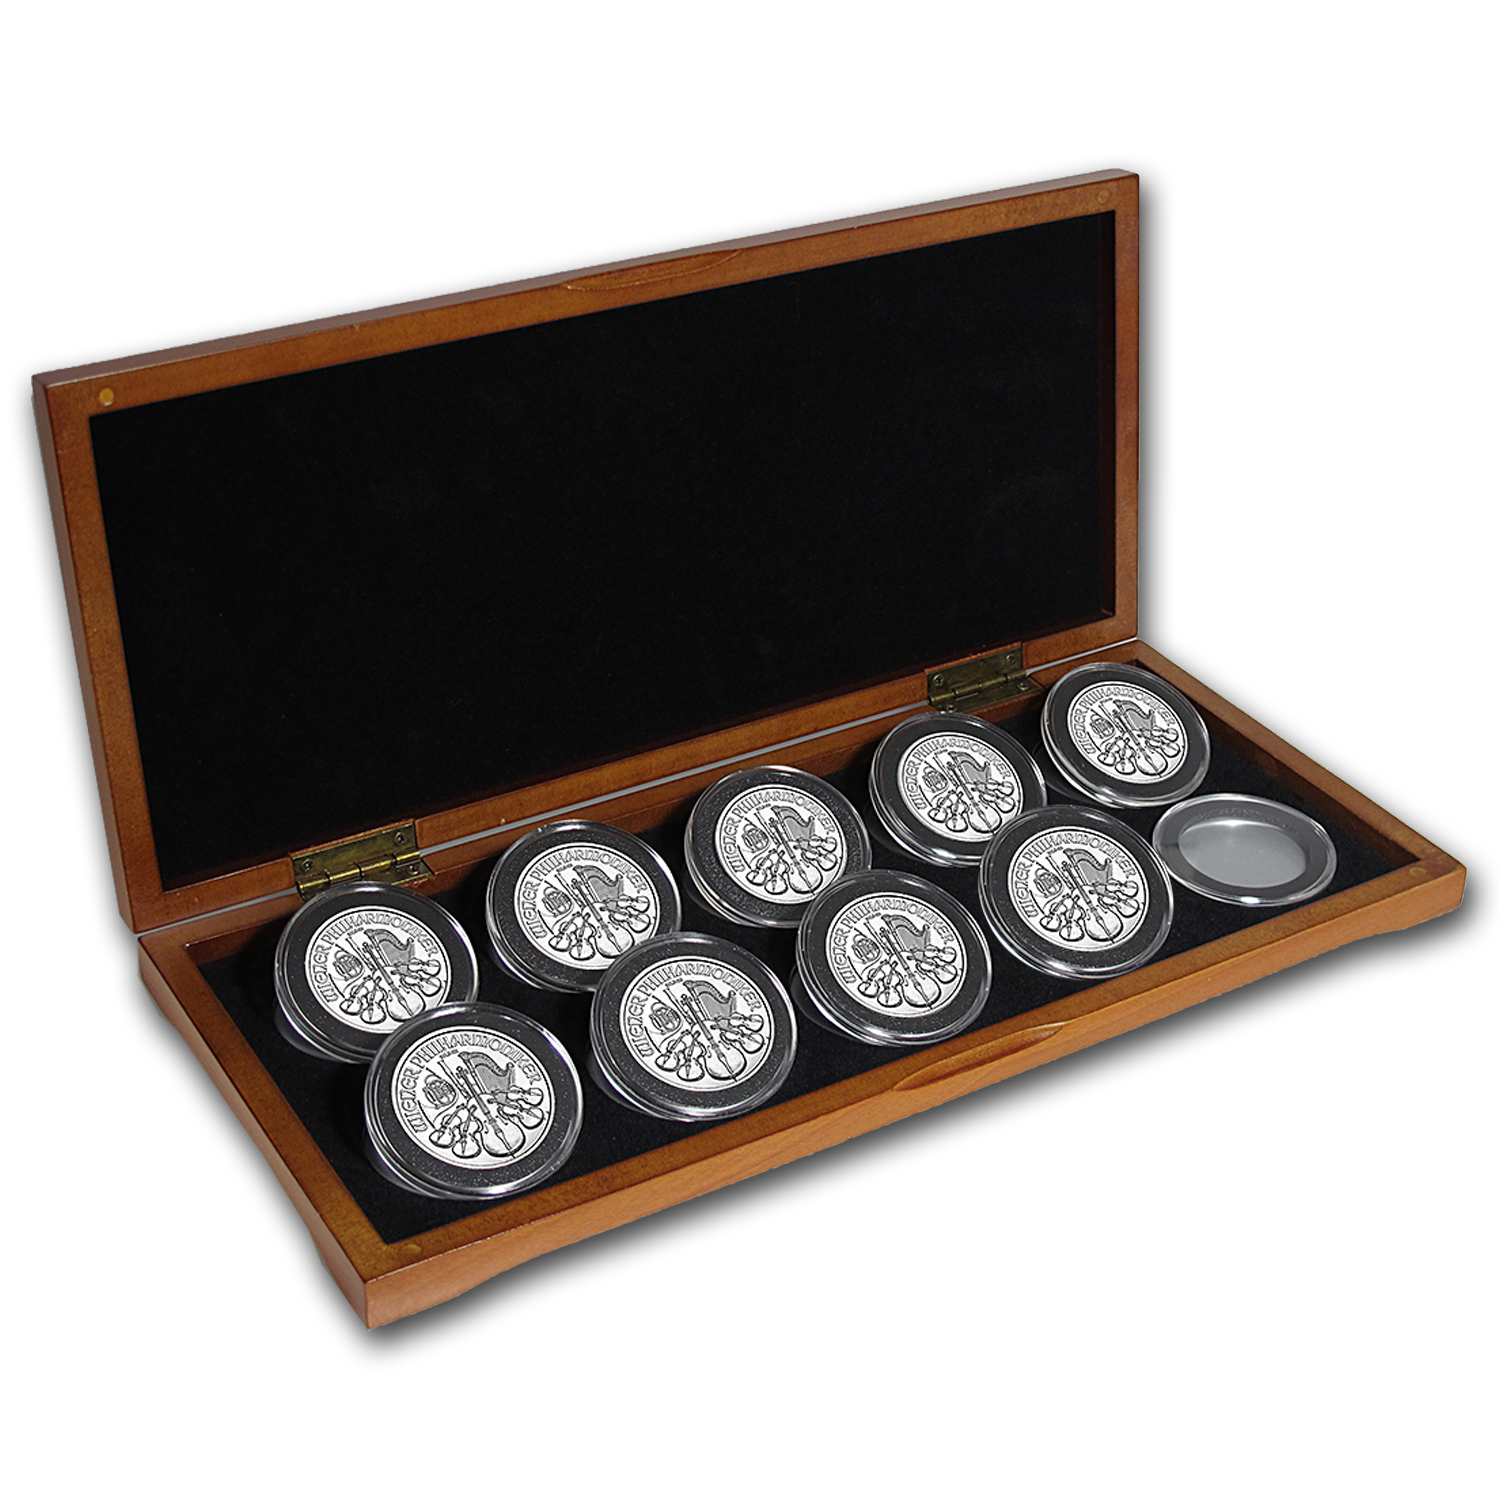 2008-2016 Austria 9-Coin 1 oz Silver Philharmonic Set